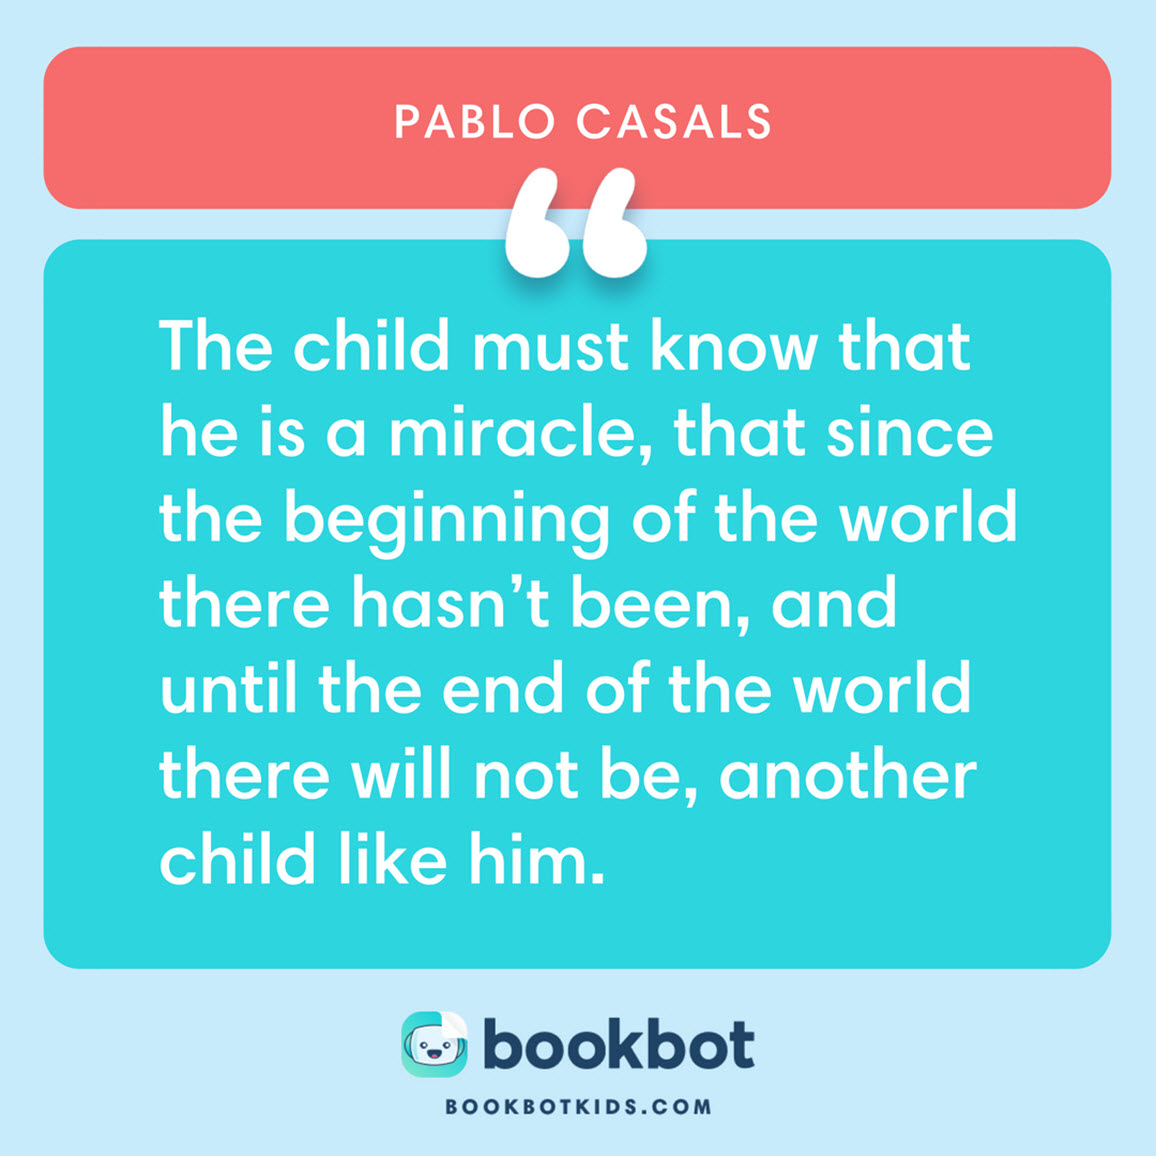 The child must know that he is a miracle, that since the beginning of the world there hasn't been, and until the end of the world there will not be, another child like him. – Pablo Casals